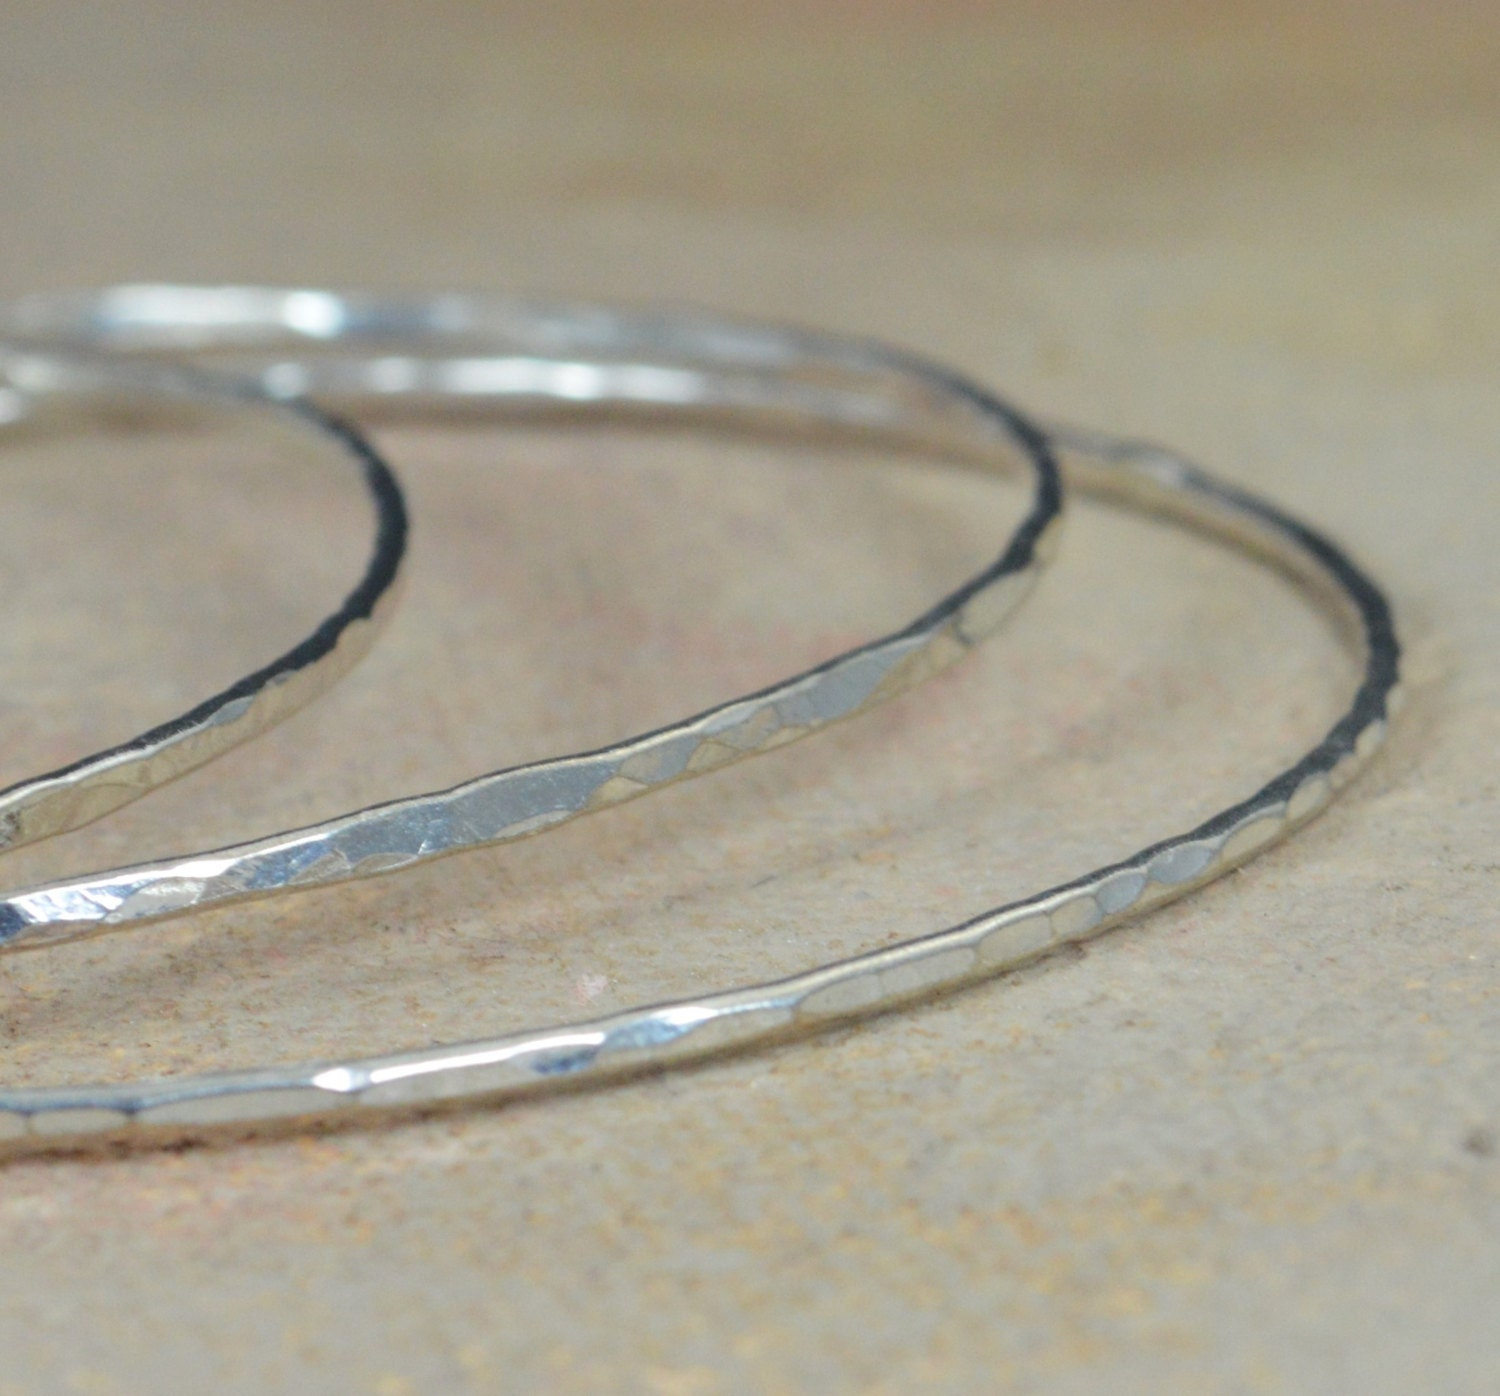 silver lyst bangle oval metallic bangles kors in product bracelets hinged thin michael bracelet jewelry gallery